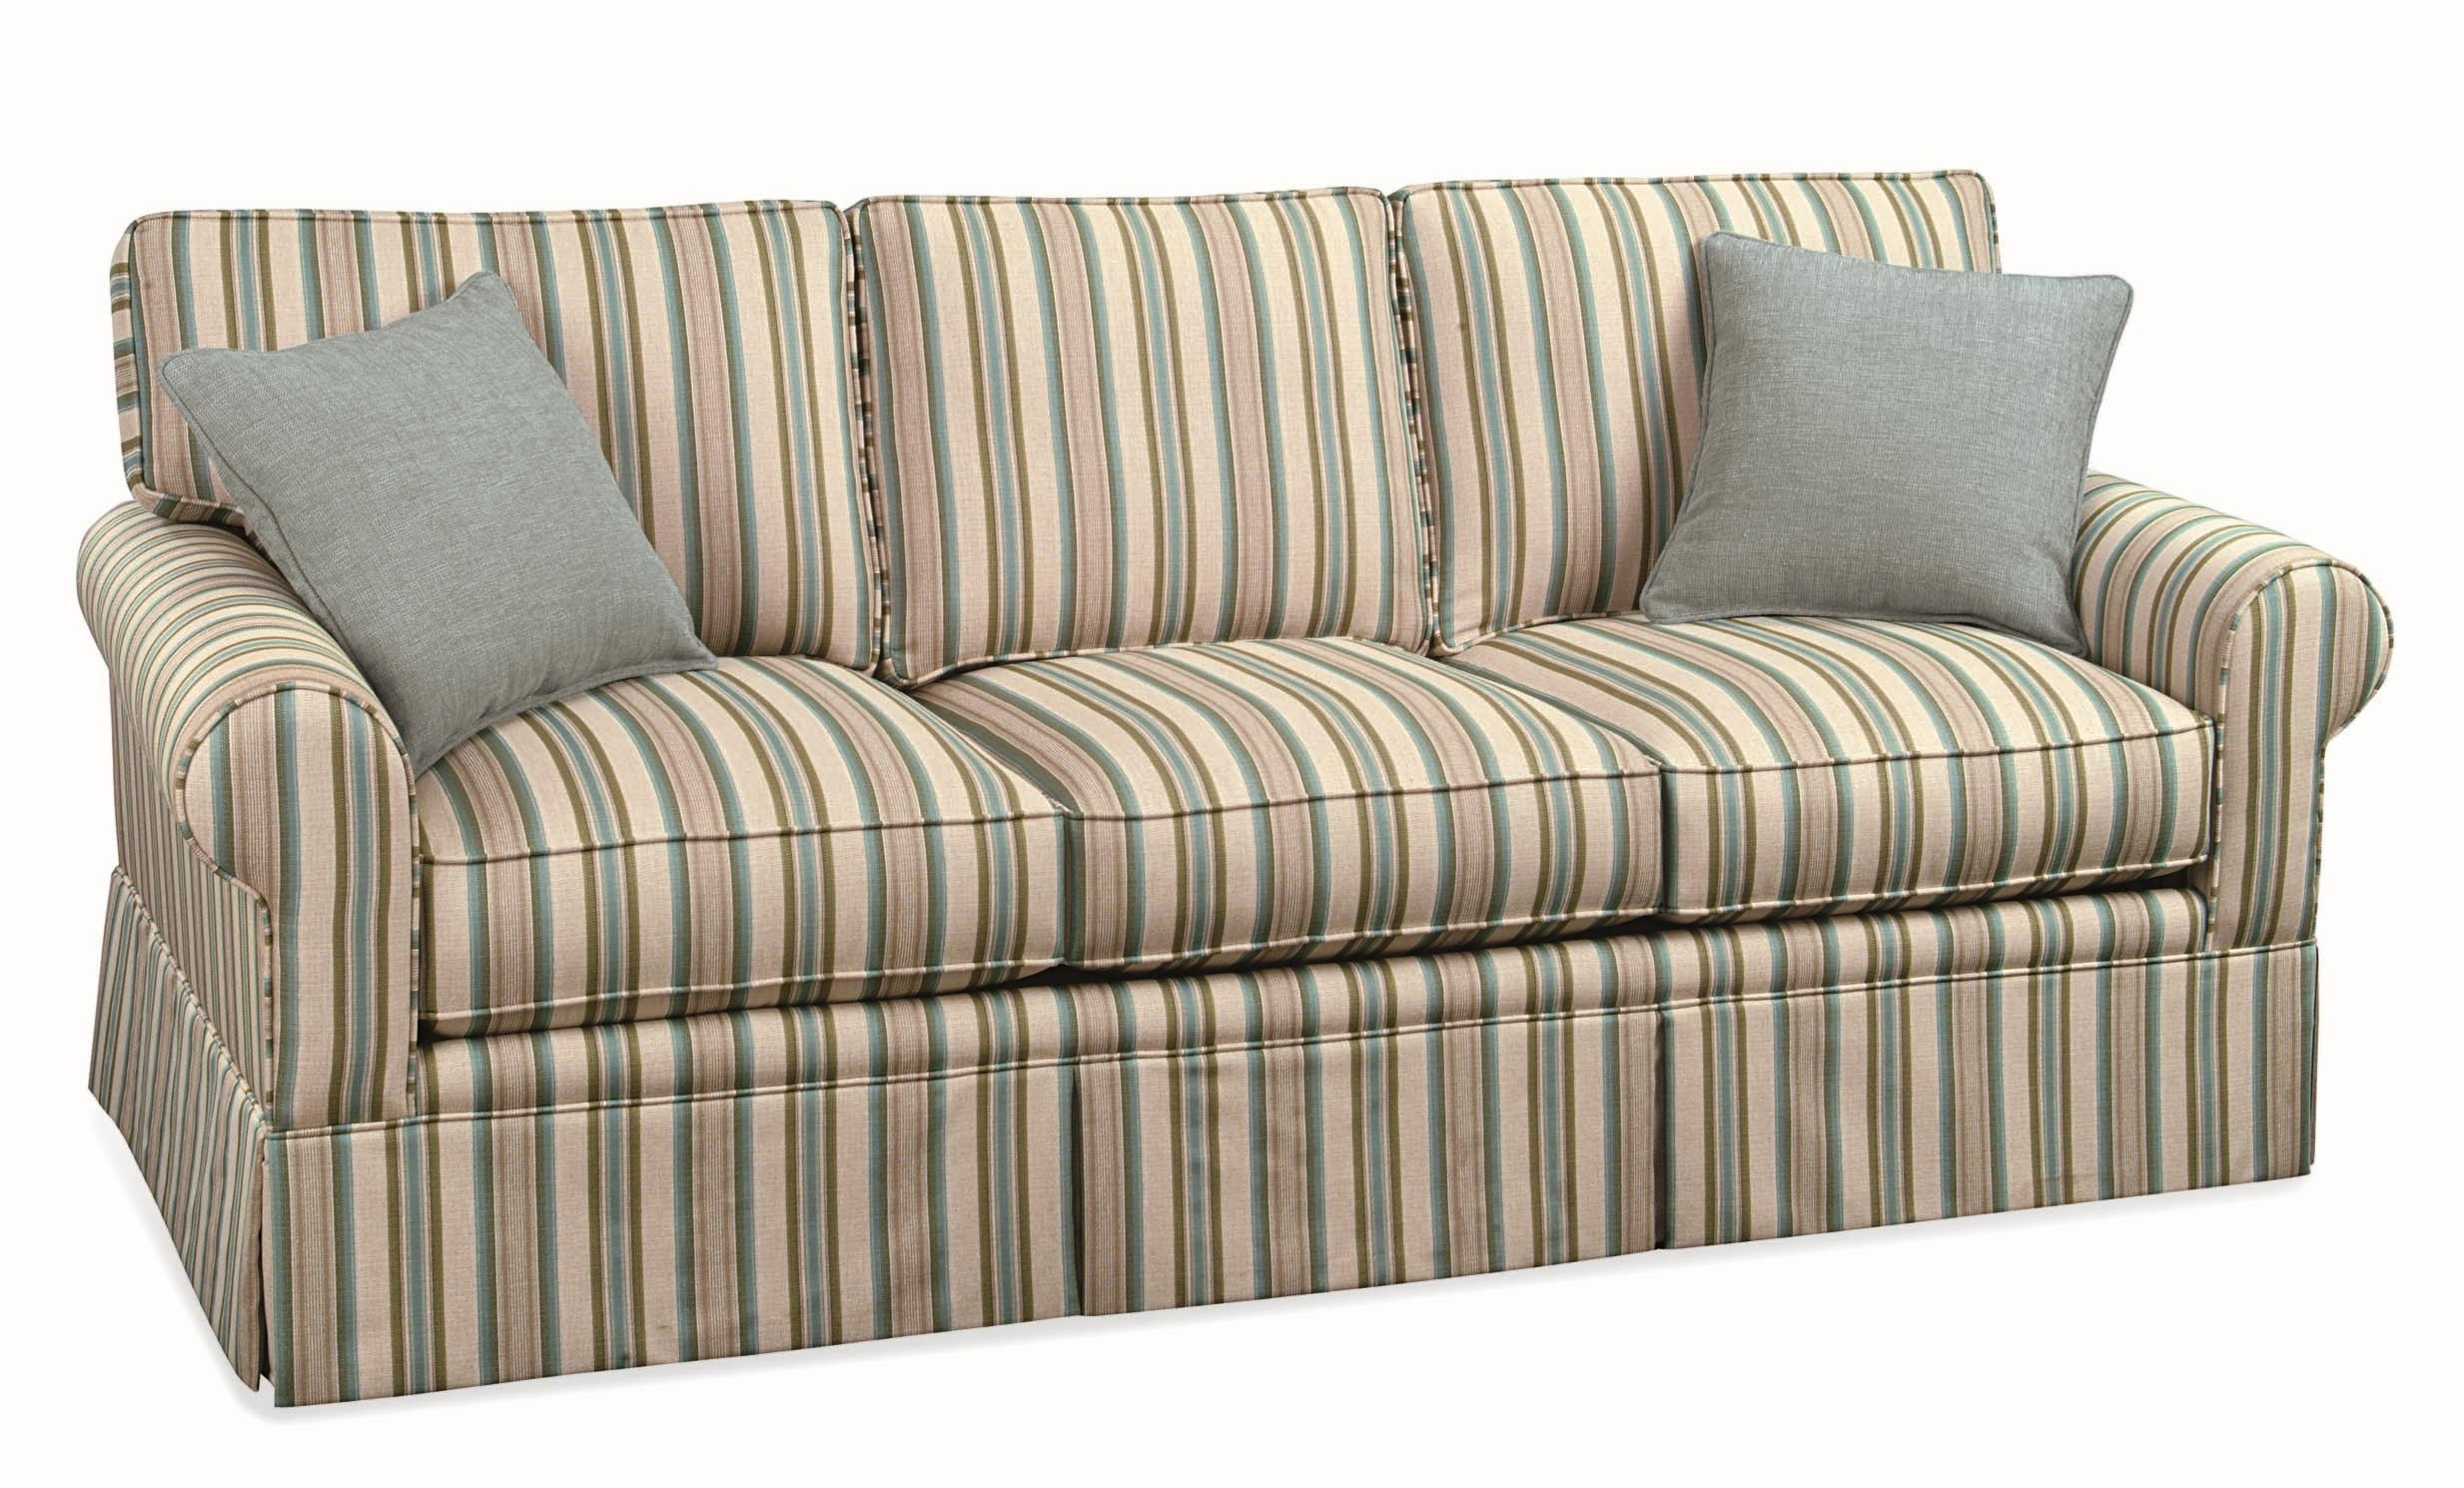 Braxton Culler Sofas & Accent Sofas Store – Dealer Locator Inside Braxton Culler Sofas (View 2 of 20)